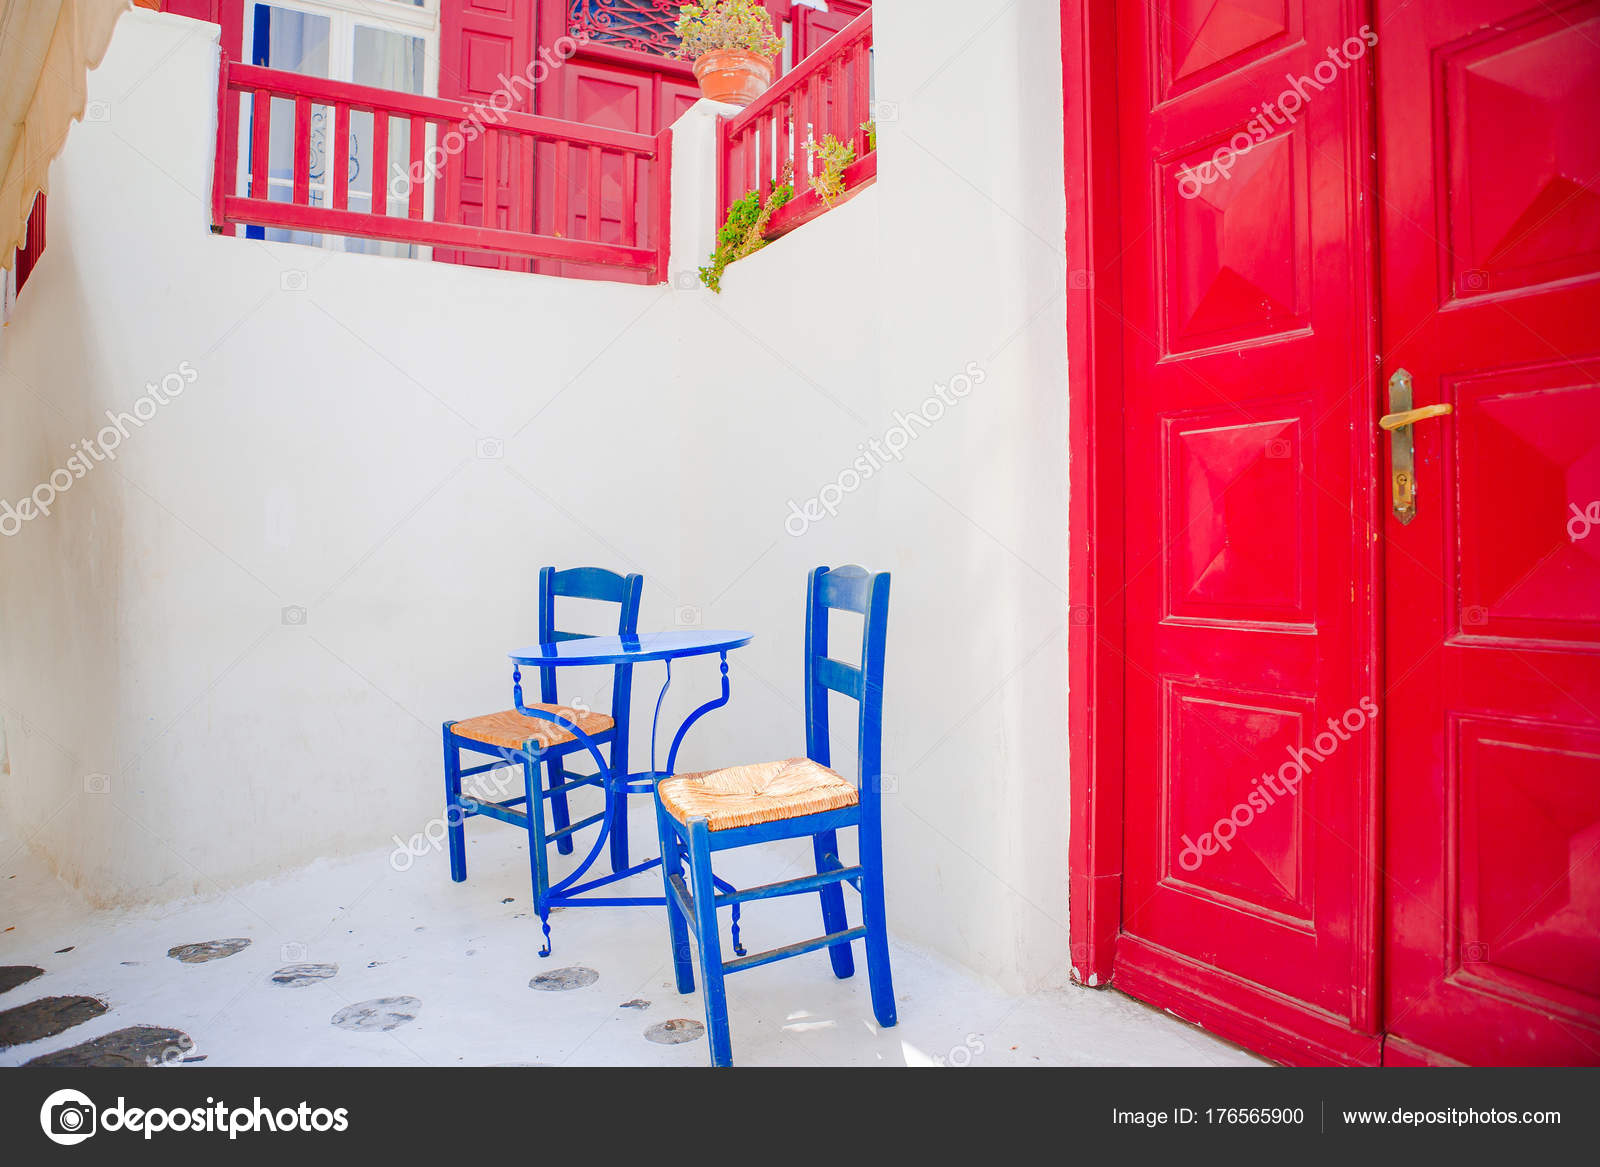 Admirable Outdoor Cafe With Blue Chairs On Street Of Typical Greek Short Links Chair Design For Home Short Linksinfo